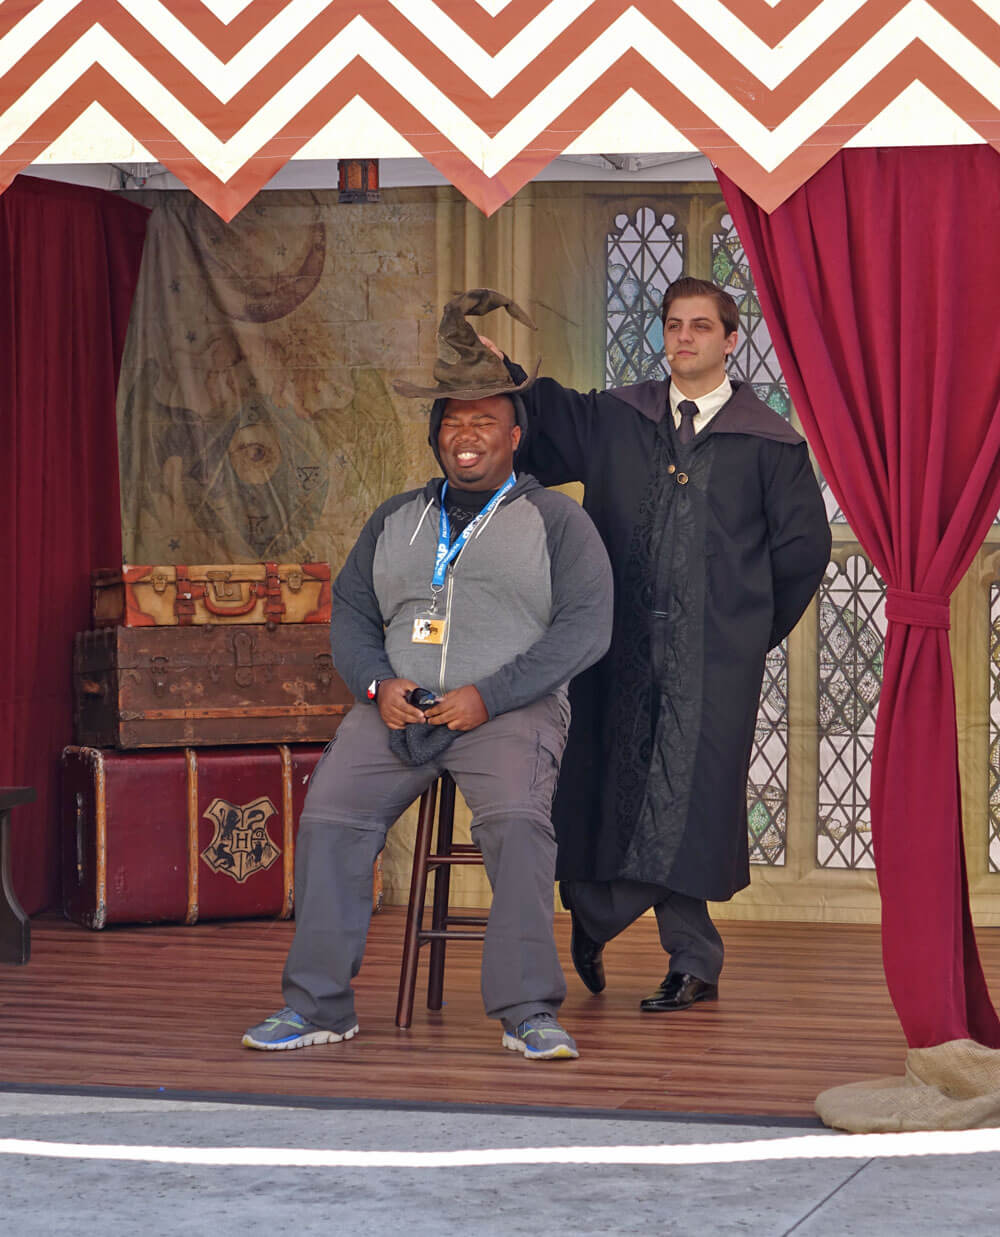 A Celebration of Harry Potter 2017 - Sorting Hat Experience